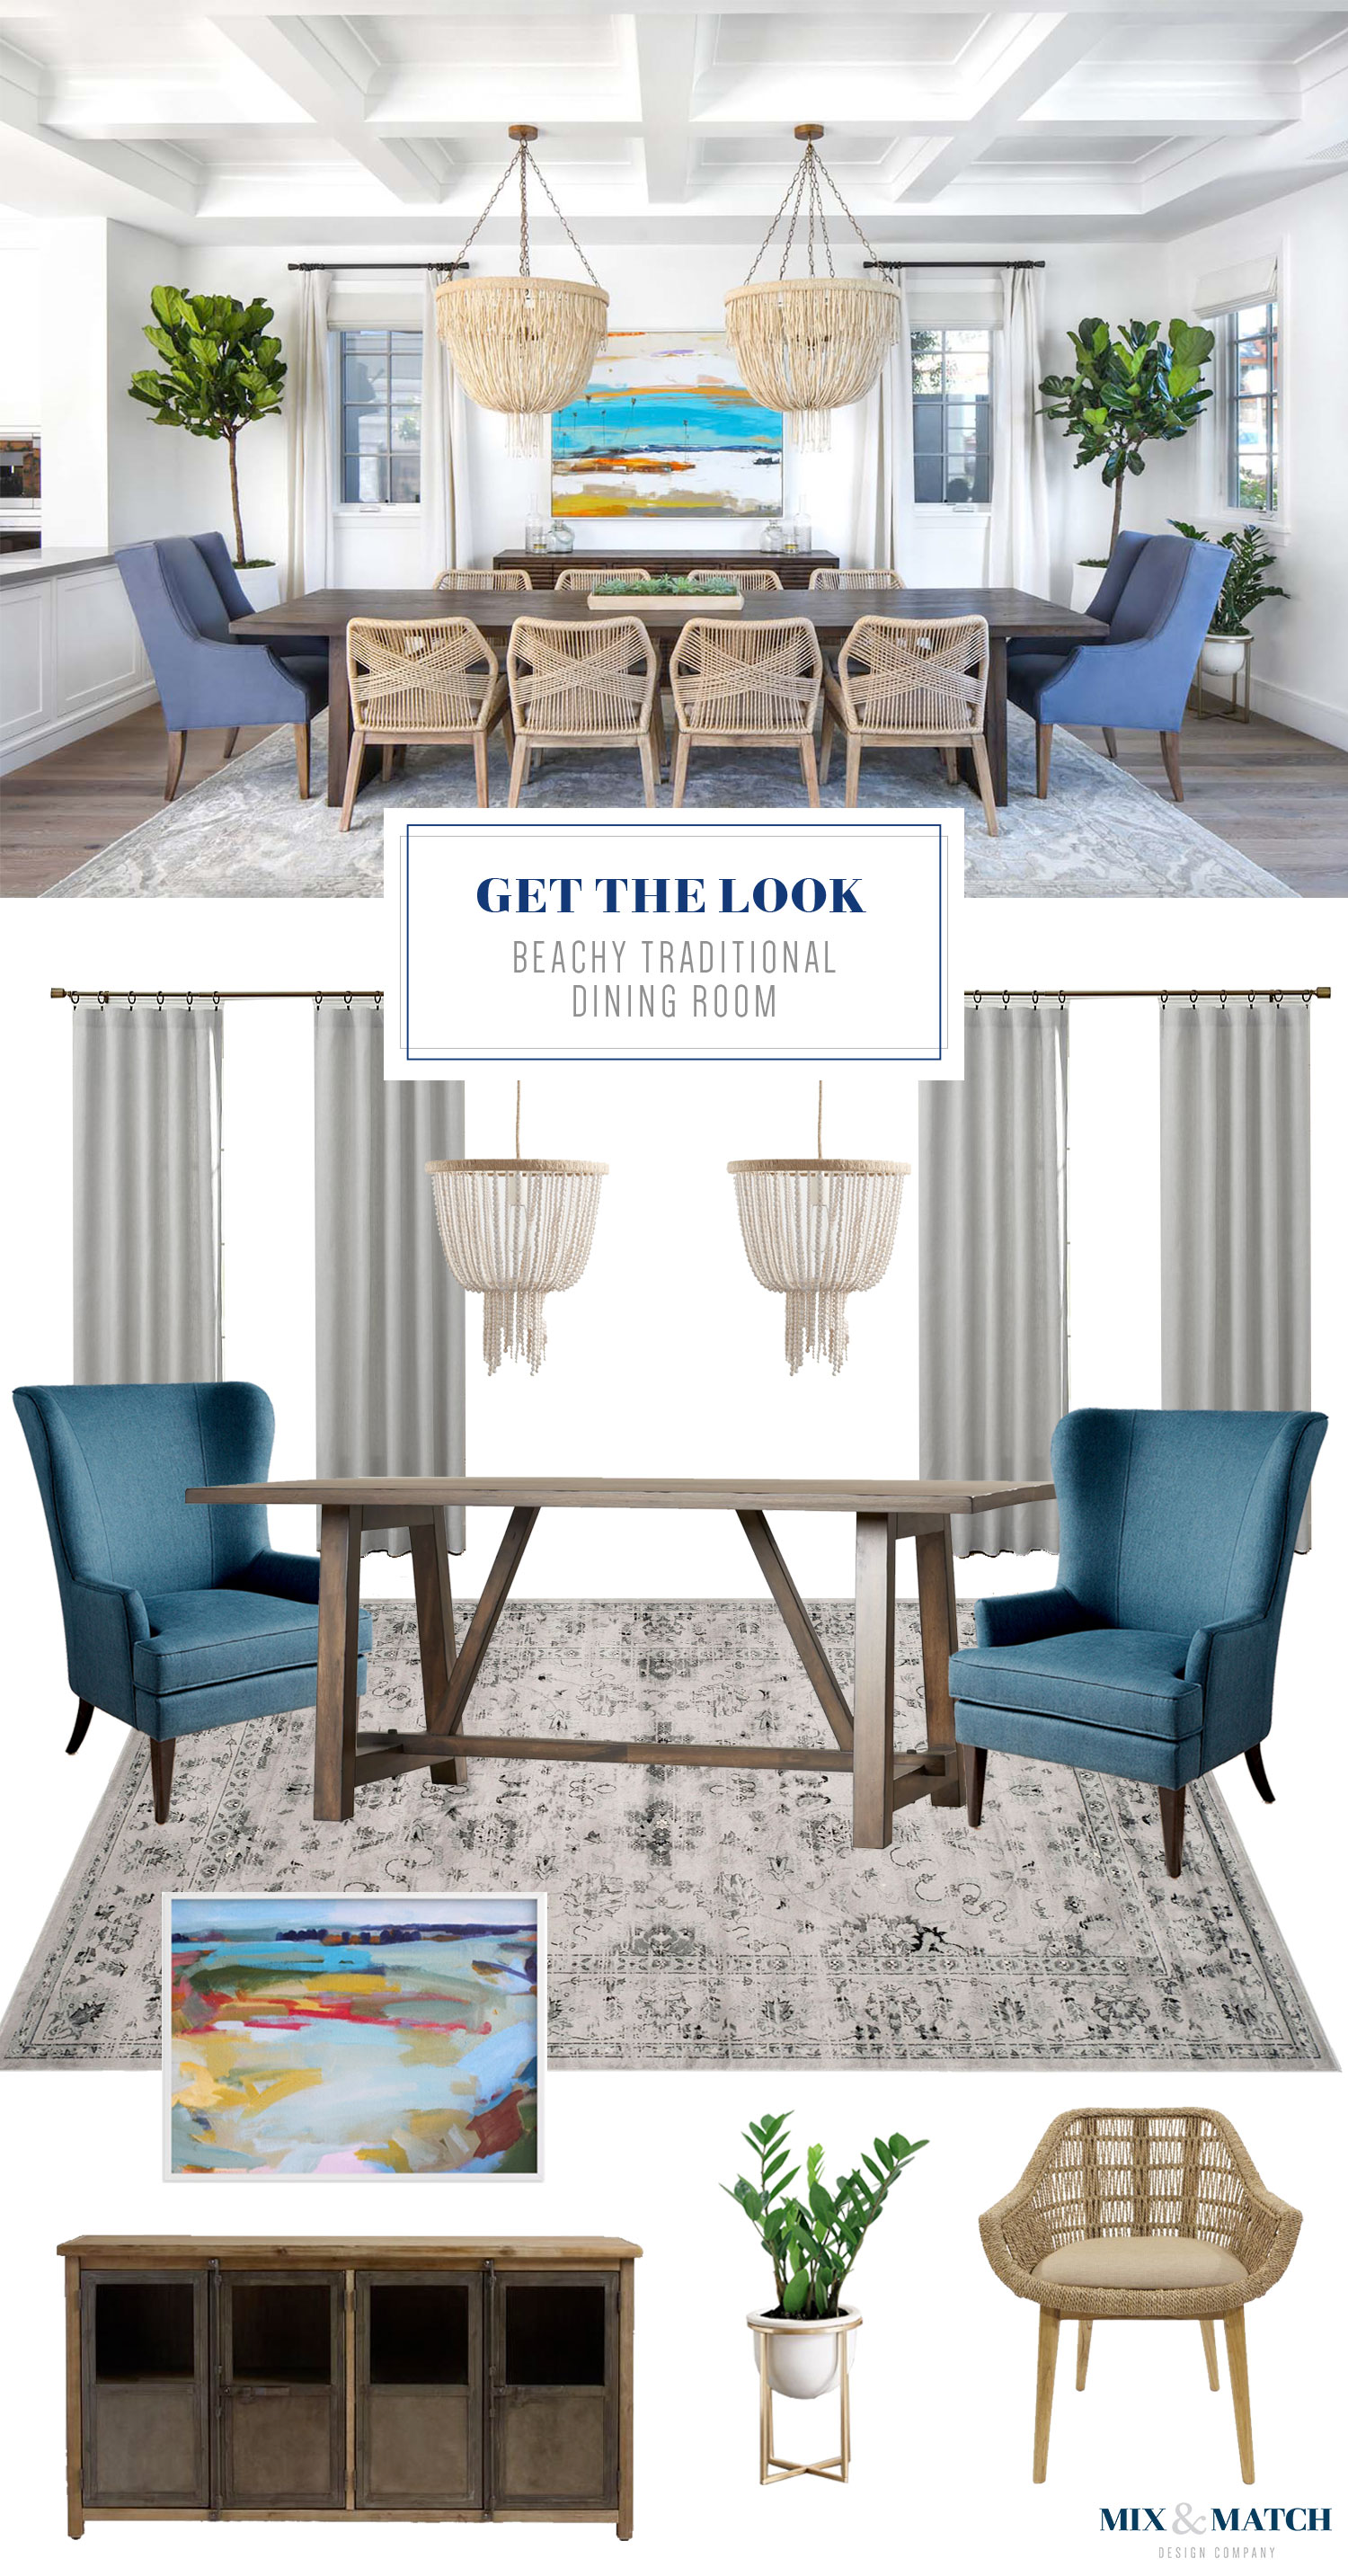 Get the look of this traditional meets beachy dining room on the blog! Coastal vibes, clean lines, and a touch of farmhouse make this space feel both cozy and sophisticated.